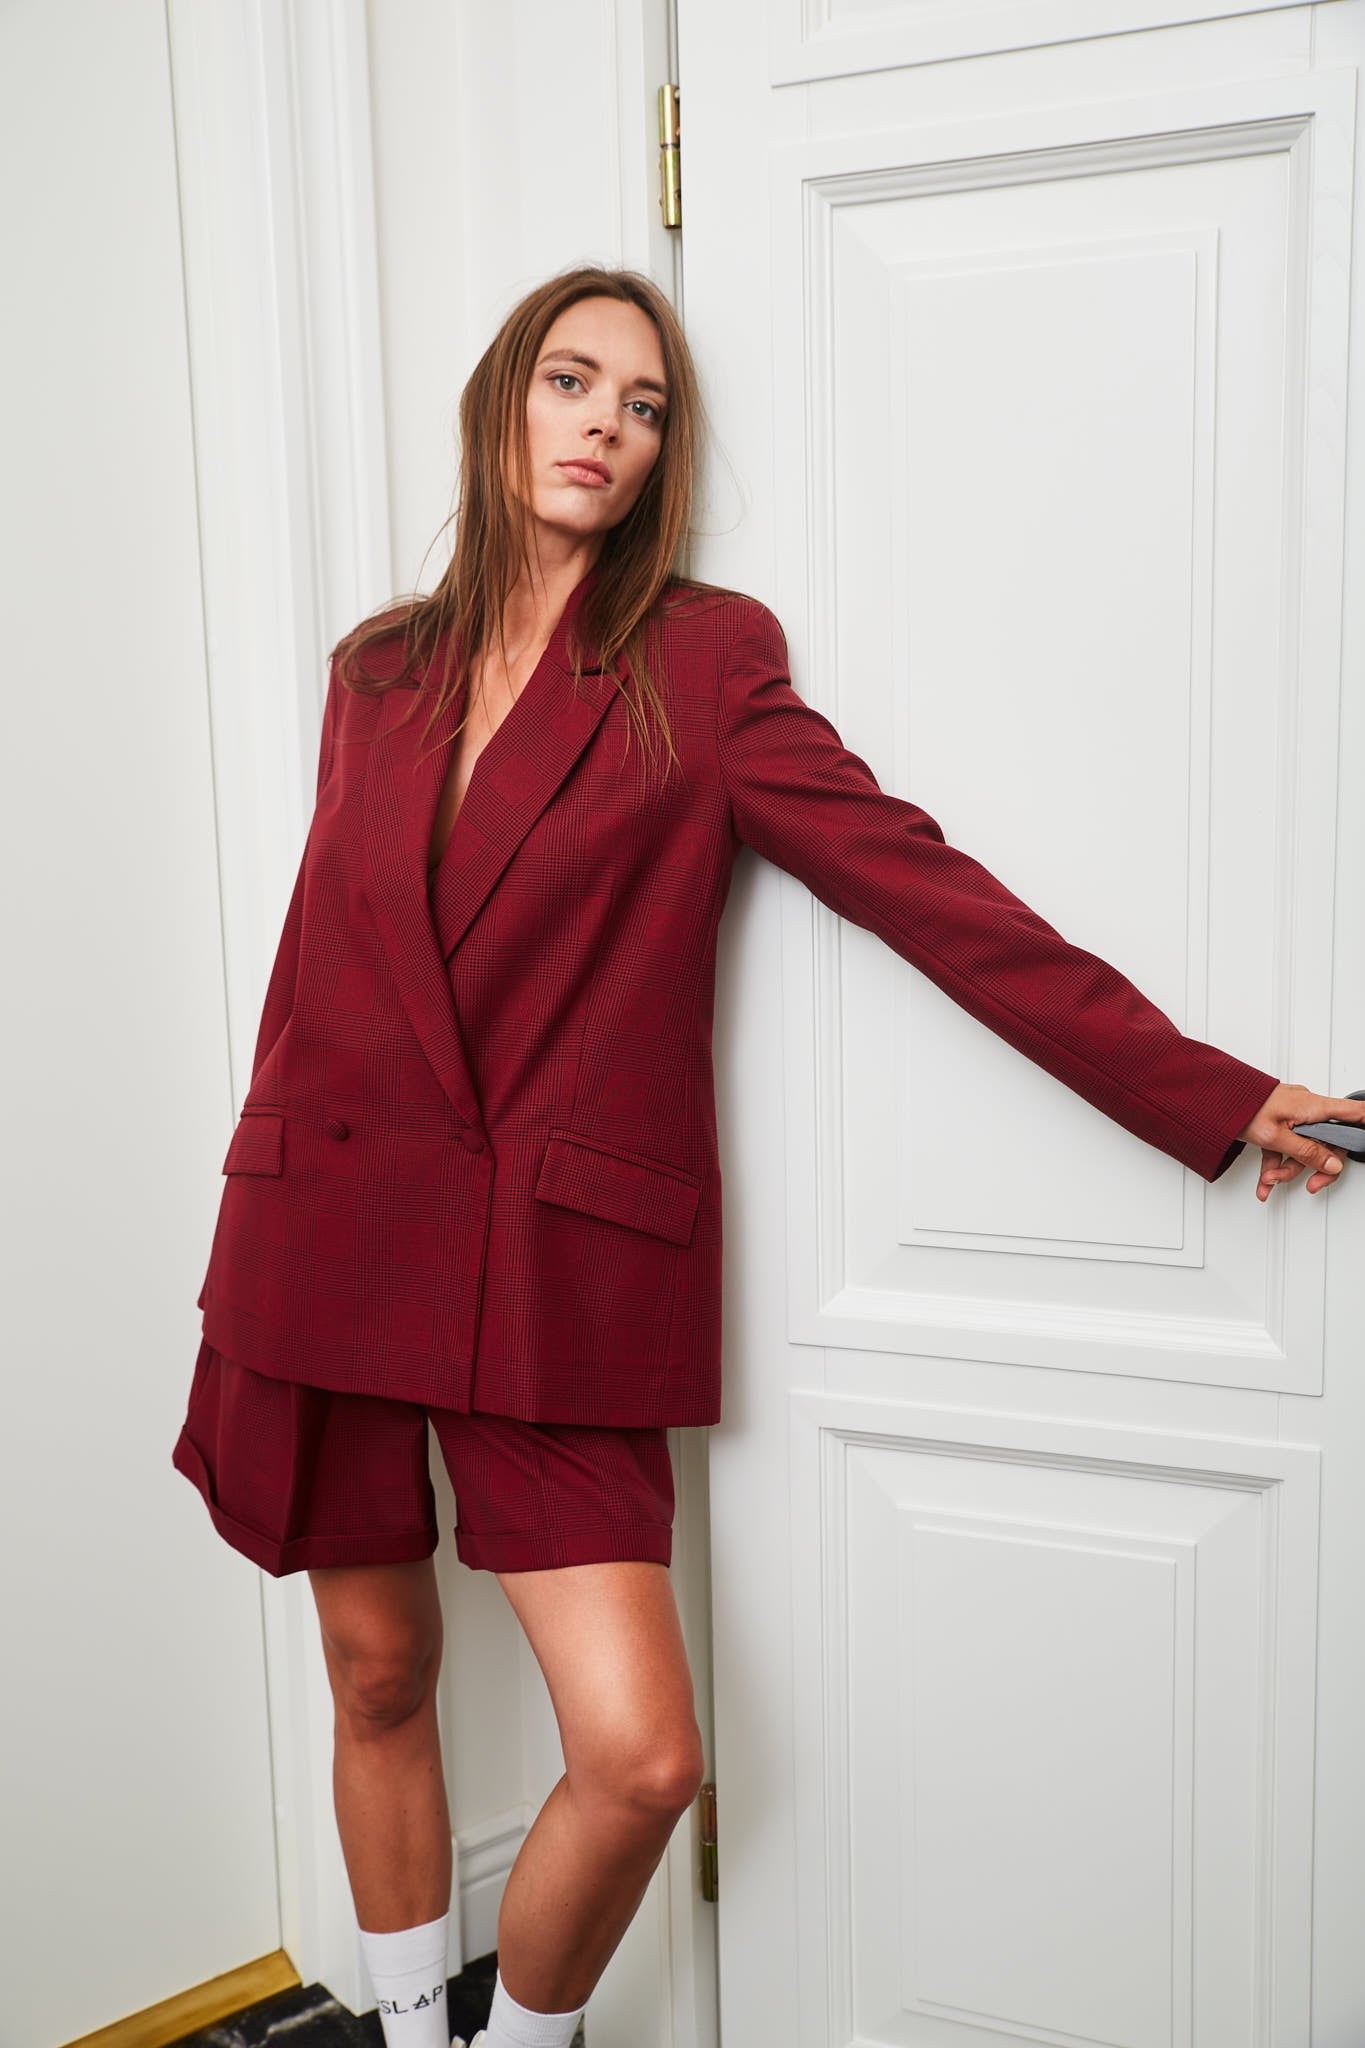 Le SLAP burgundy check tailoring suit editorial fashion photoshoot